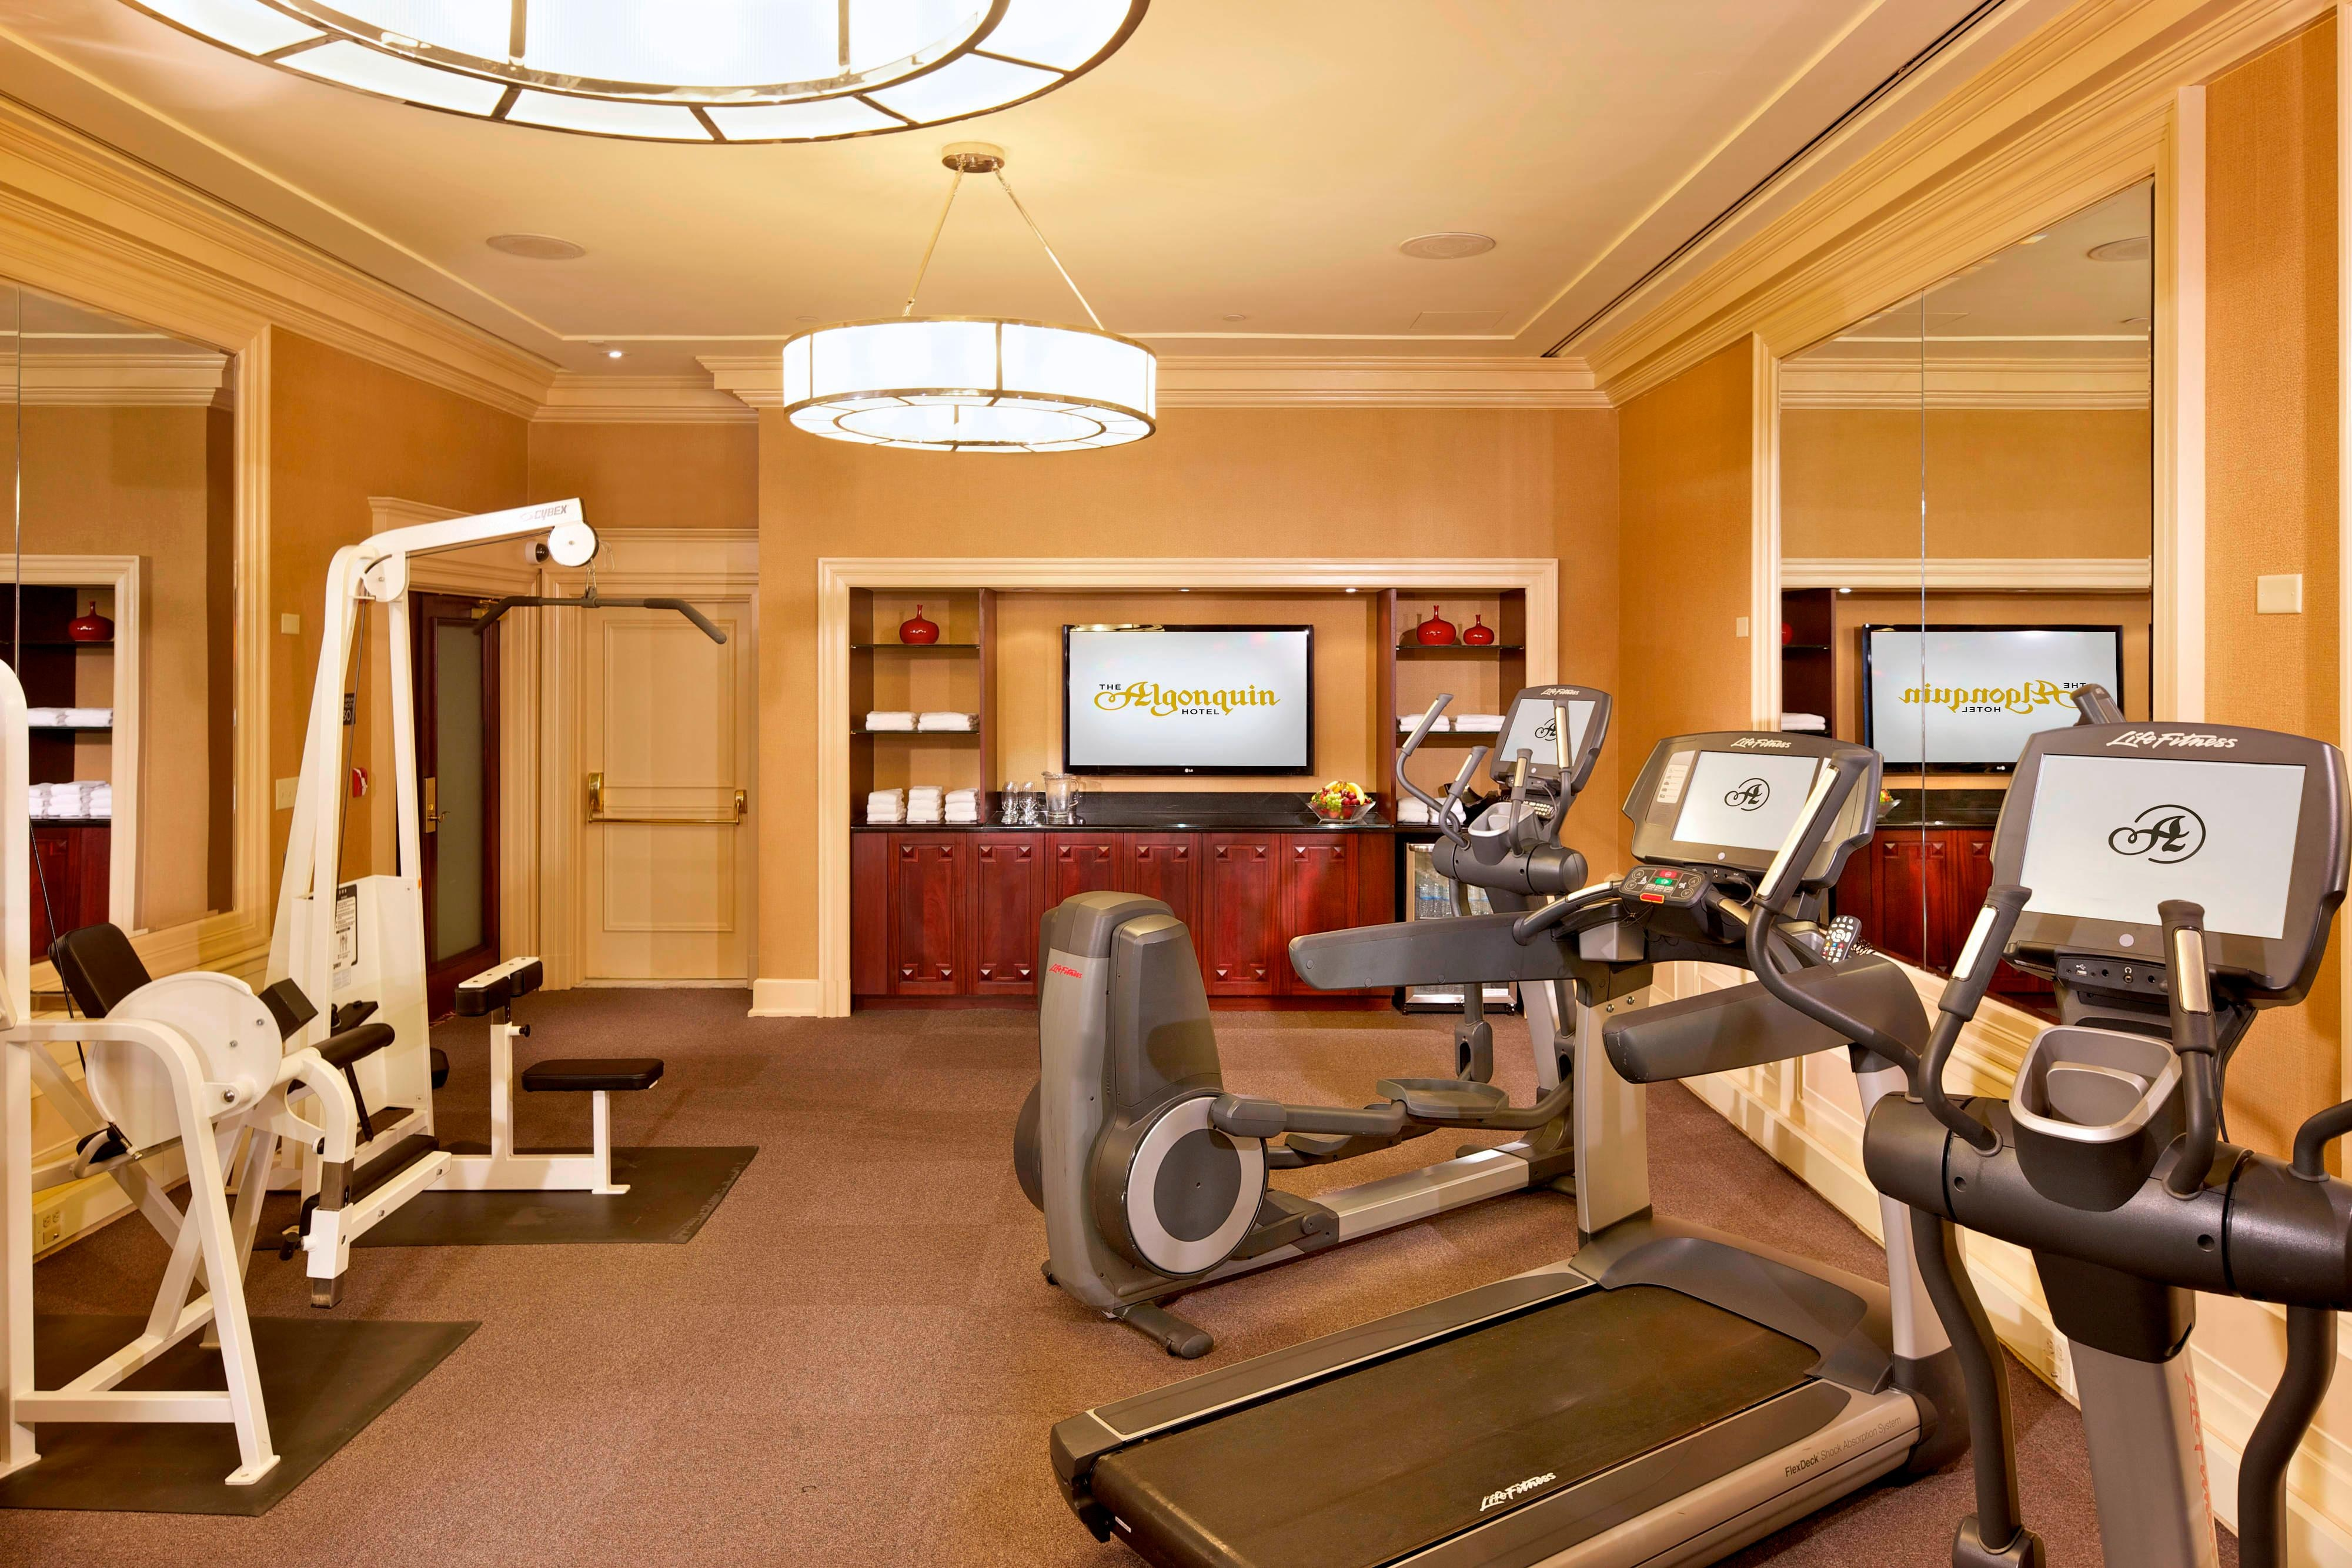 Fitness Center in NYC